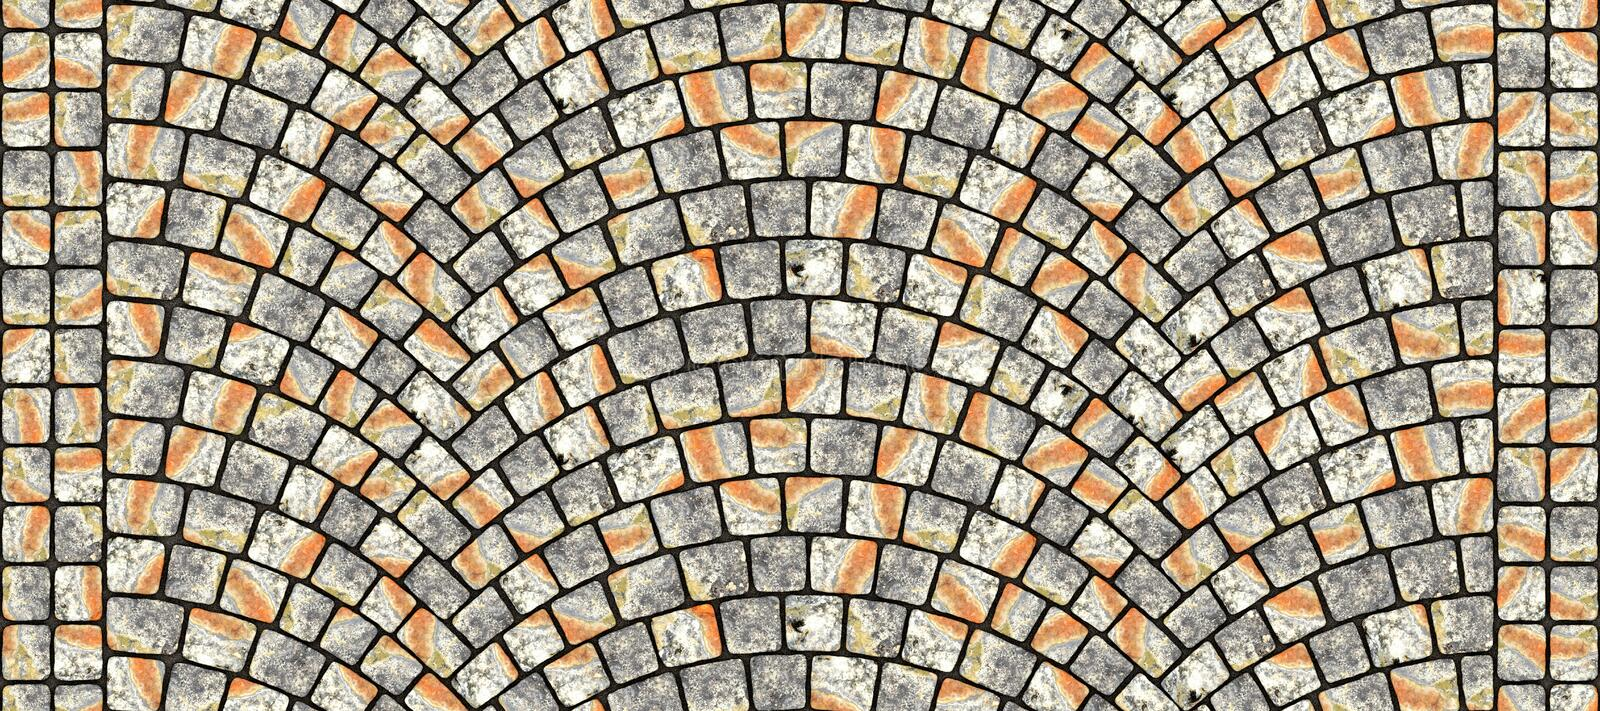 Road curved cobblestone texture 111. Cobblestone arched pavement road with edge courses at the sidewalk. Seamless tileable repeating 3D rendering texture stock illustration